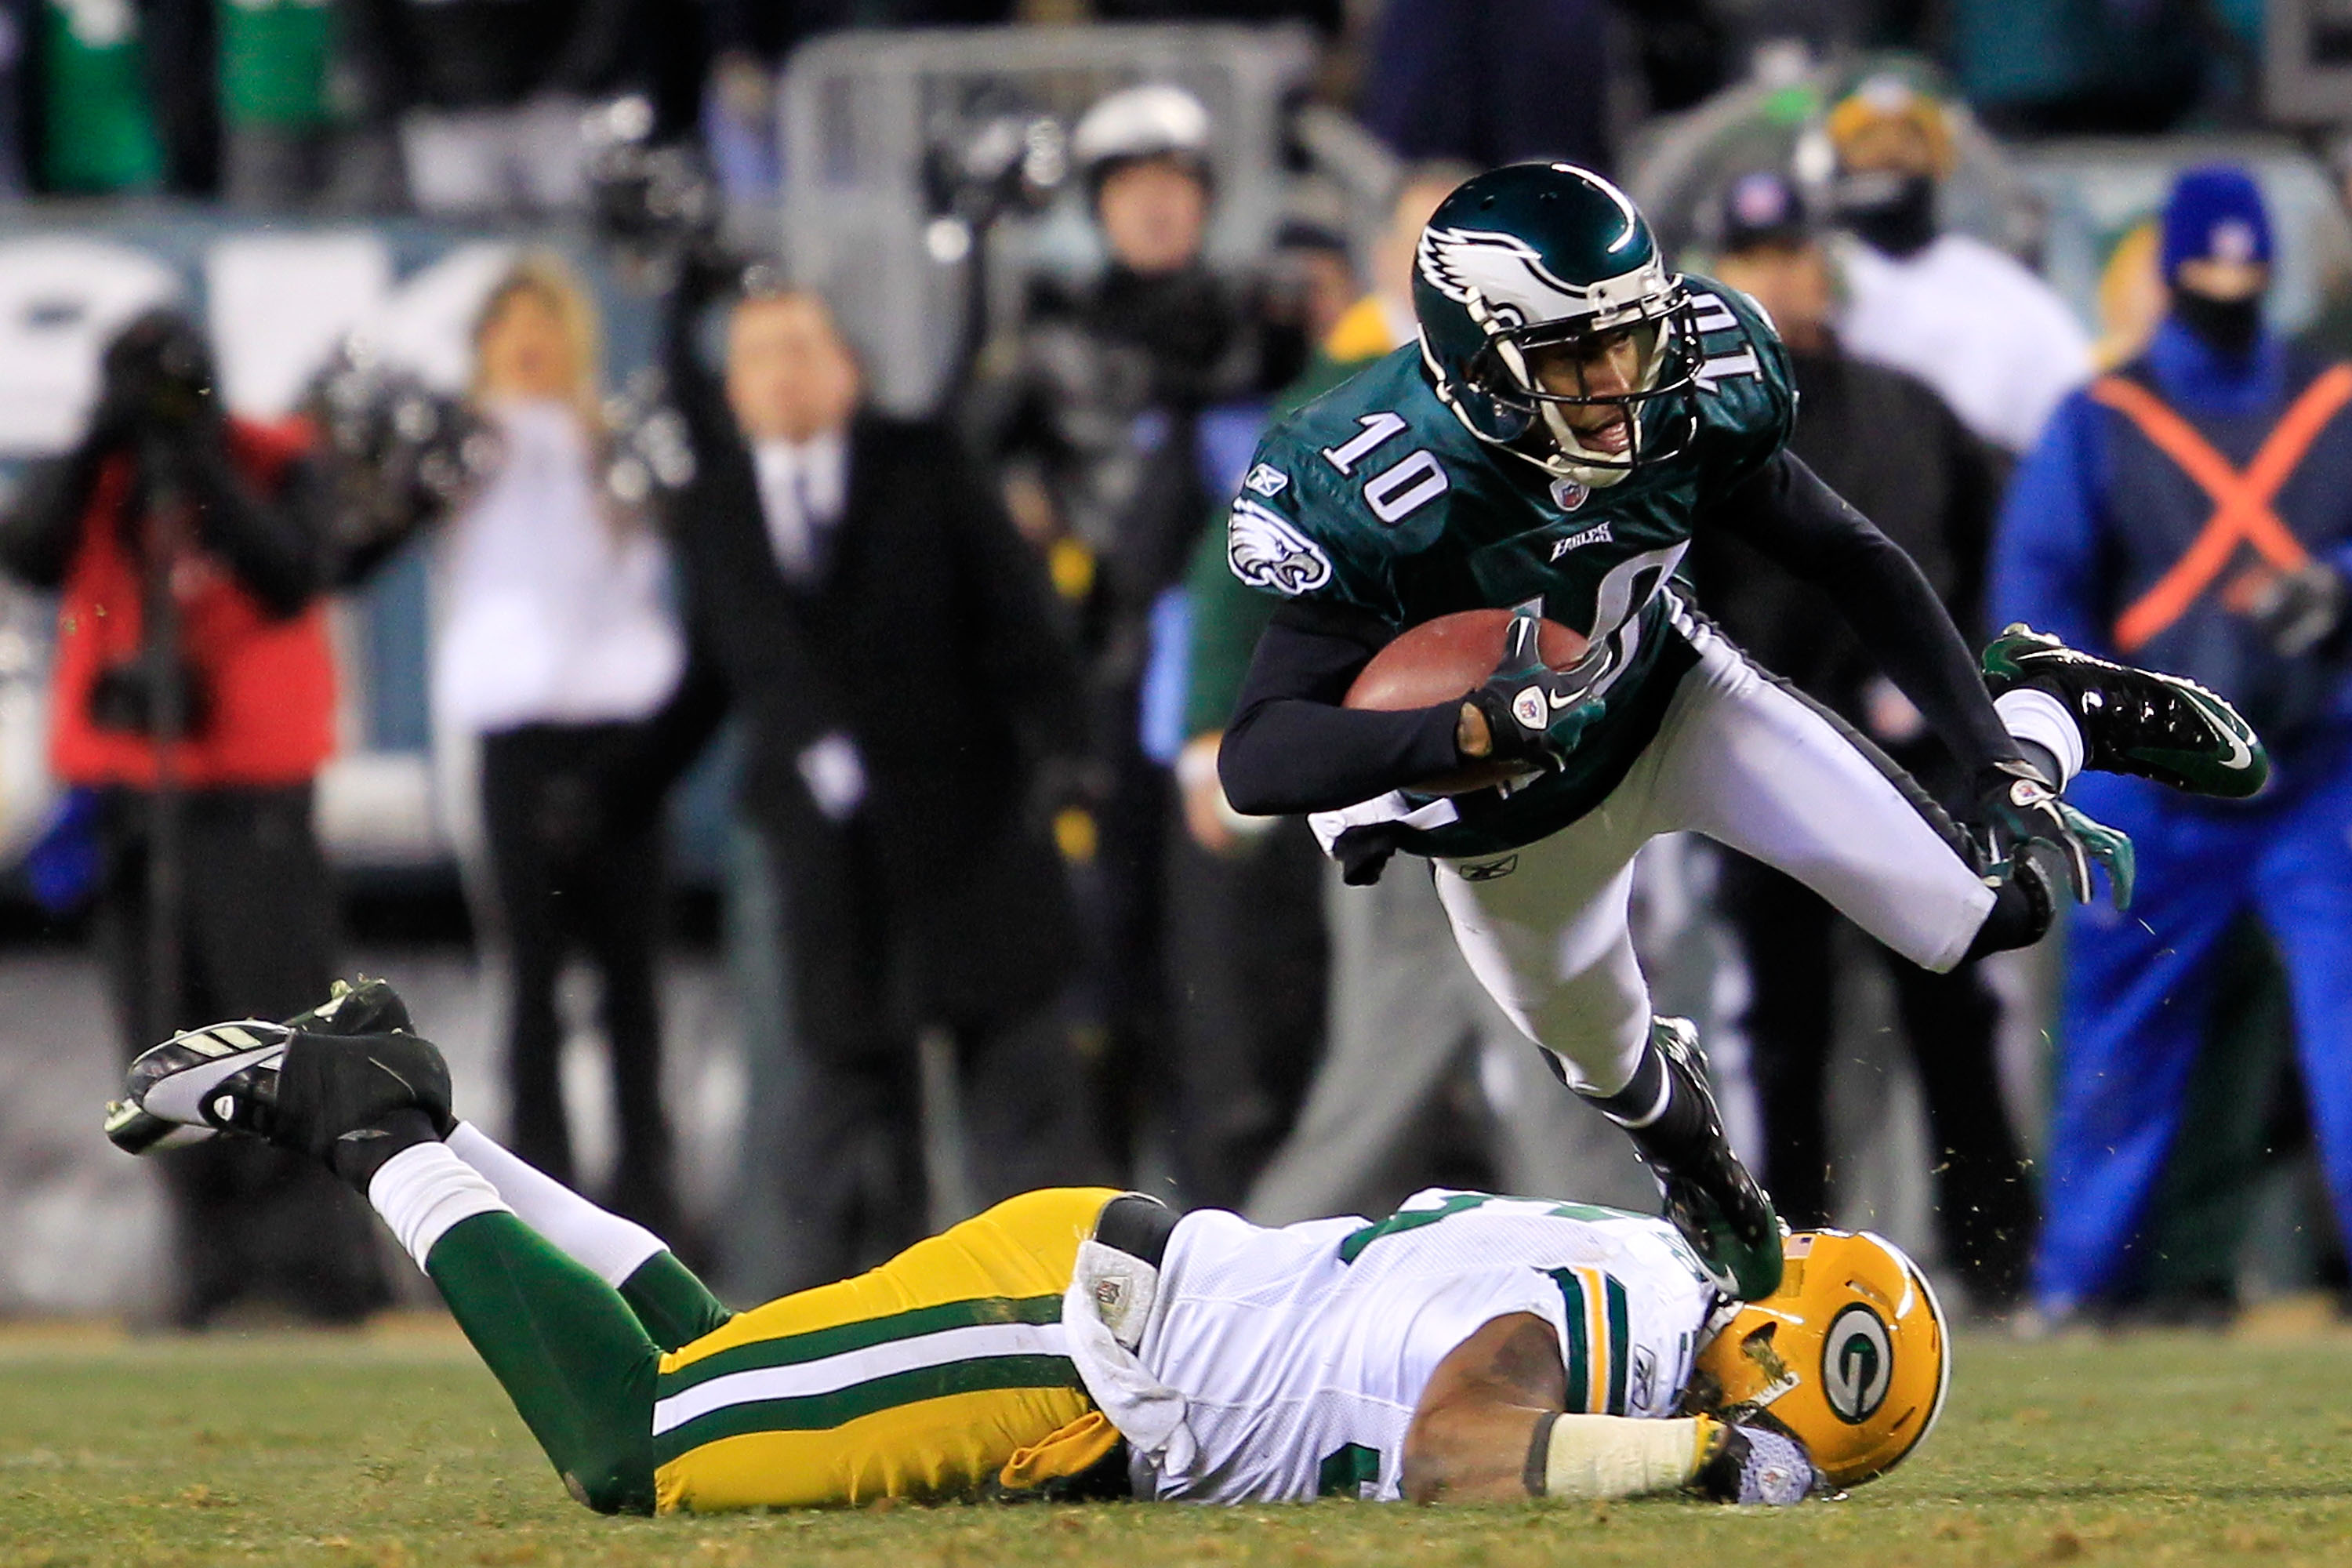 PHILADELPHIA, PA - JANUARY 09:  DeSean Jackson #10 of the Philadelphia Eagles runs down field against Desmond Bishop #55 of the Green Bay Packers during the 2011 NFC wild card playoff game at Lincoln Financial Field on January 9, 2011 in Philadelphia, Pen